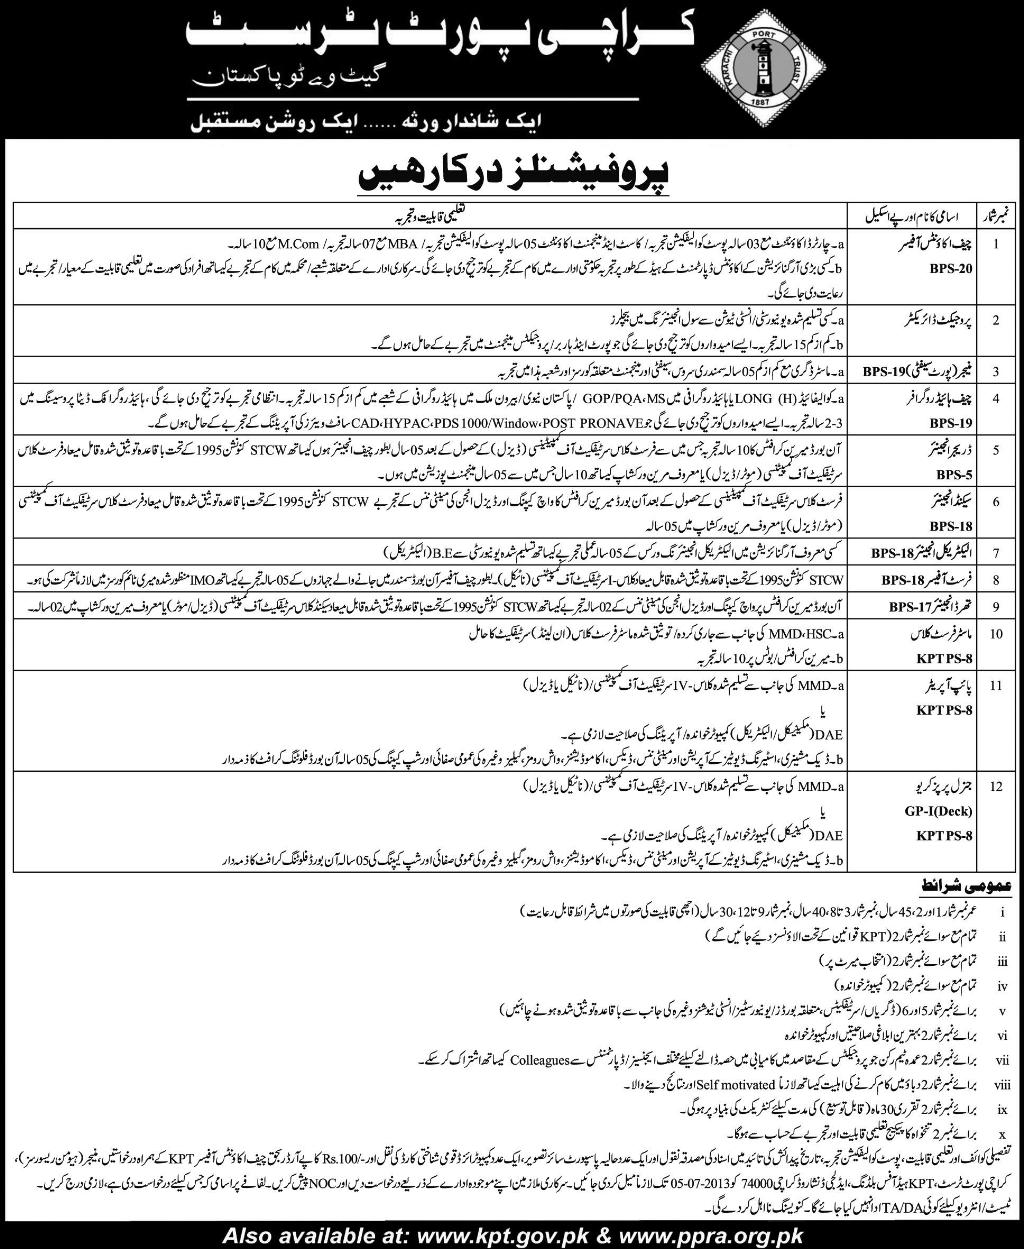 Karachi Port Trust Jobs for Chief Accounts Officer, Project Manager & Engineers